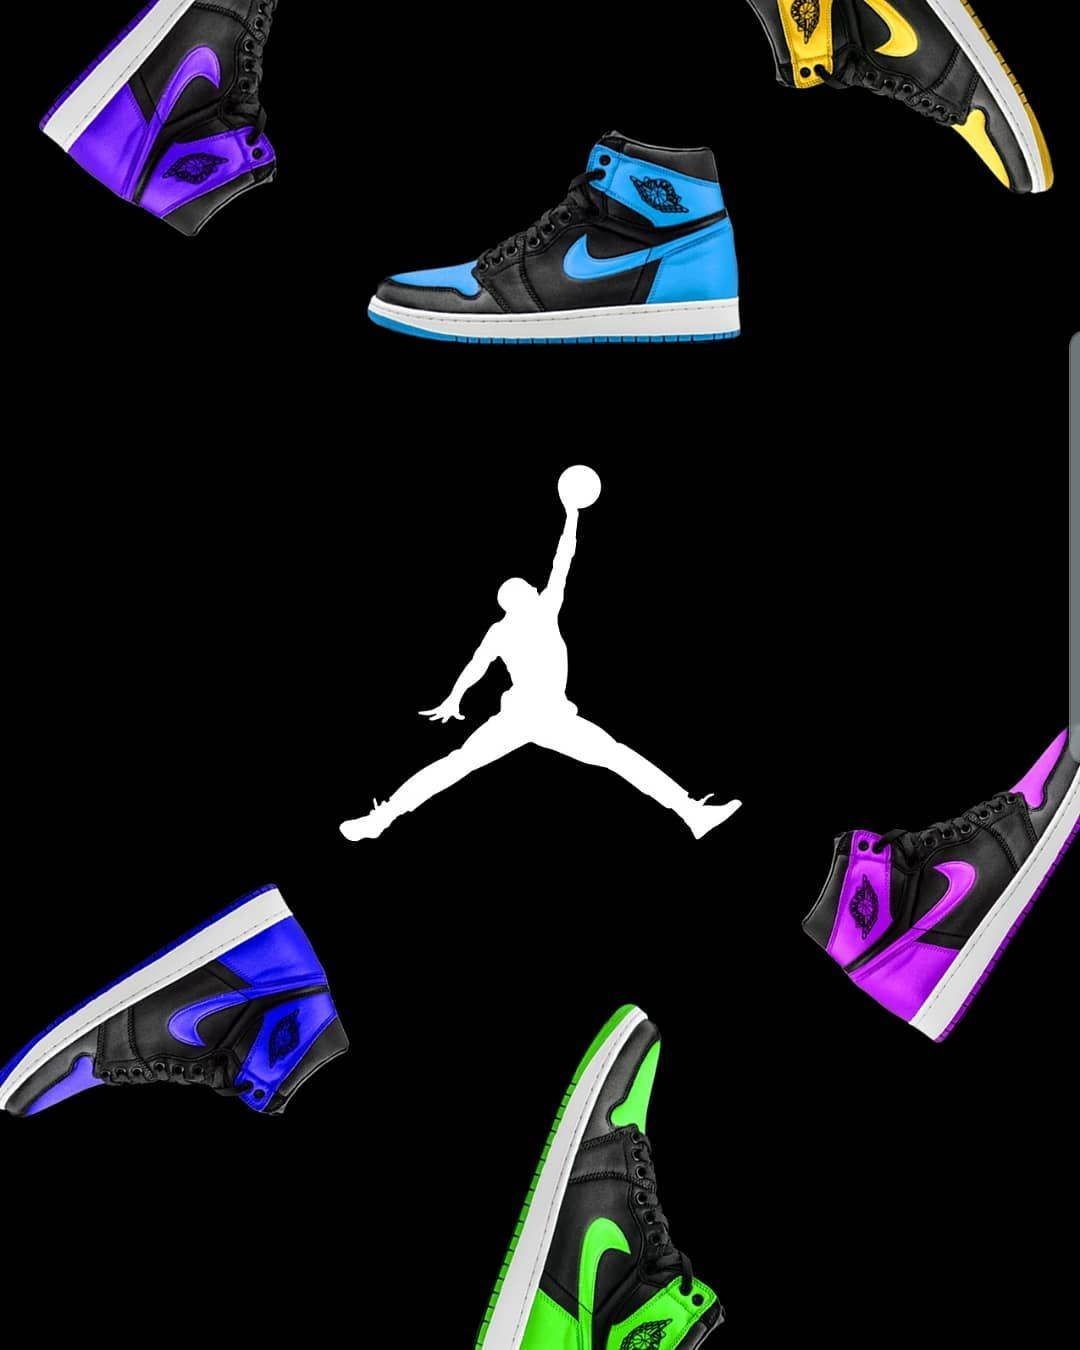 Colorfull Aj1 Amoled Wallpaper Colorfull Aj1 Amoled Wallpaper Download Our App For More Unique Wallpapers Android Onl Sneaker Head Unique Wallpaper Shoes